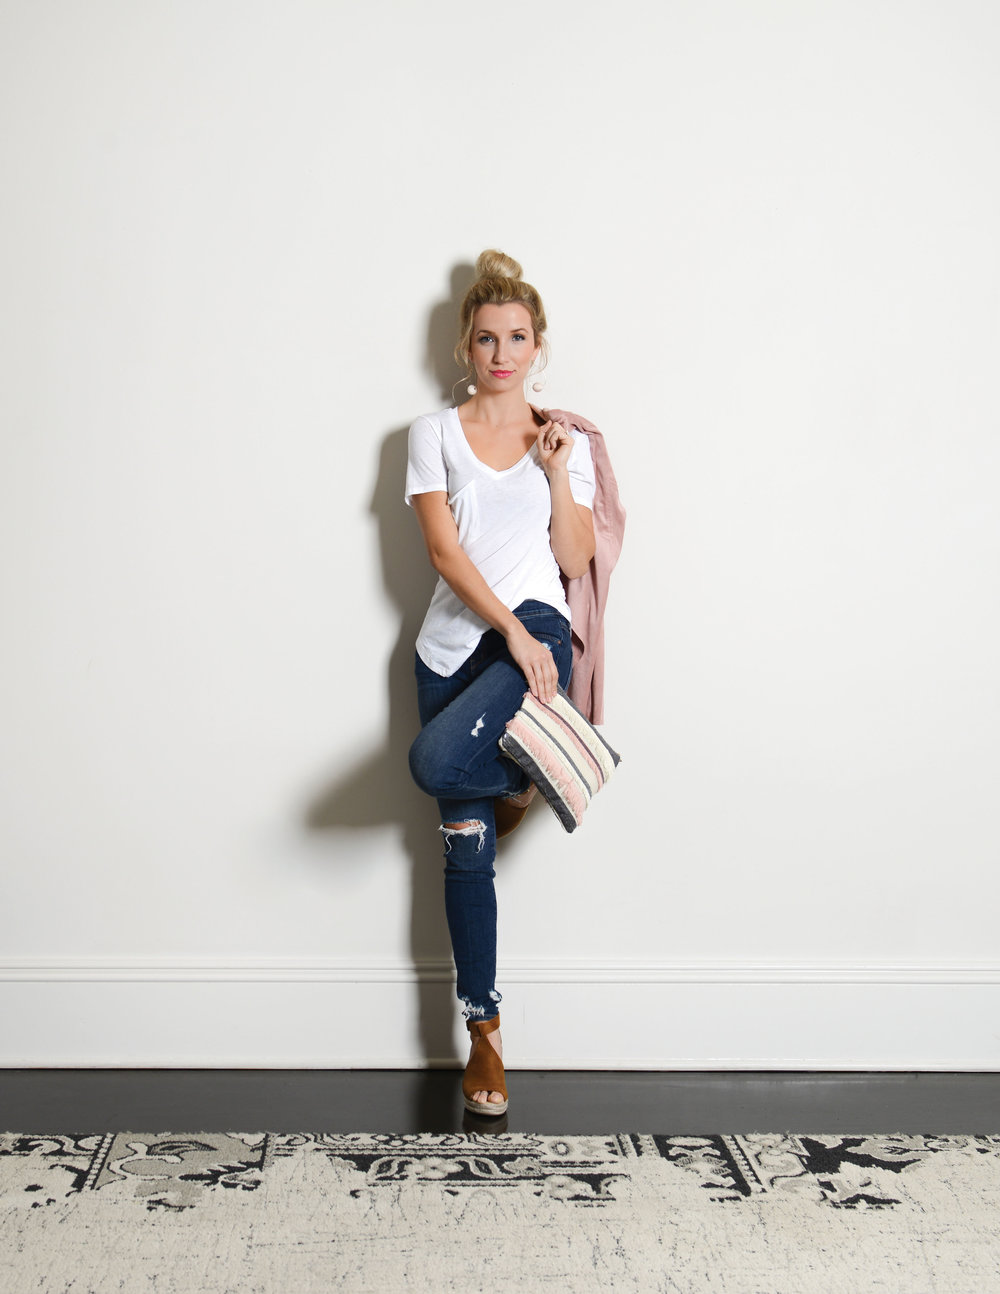 White T-shirt from Shop Swagger $30  |  Jeans from Scout & Molly's $132  |  Jacket from Sophie & Mollies Boutique $115  |  Shoes from Vestique $40 Earrings from Pink Magnolia Boutique $24  |  Clutch from Scout & Molly's $52  |  Stylist: Brittany Murdock